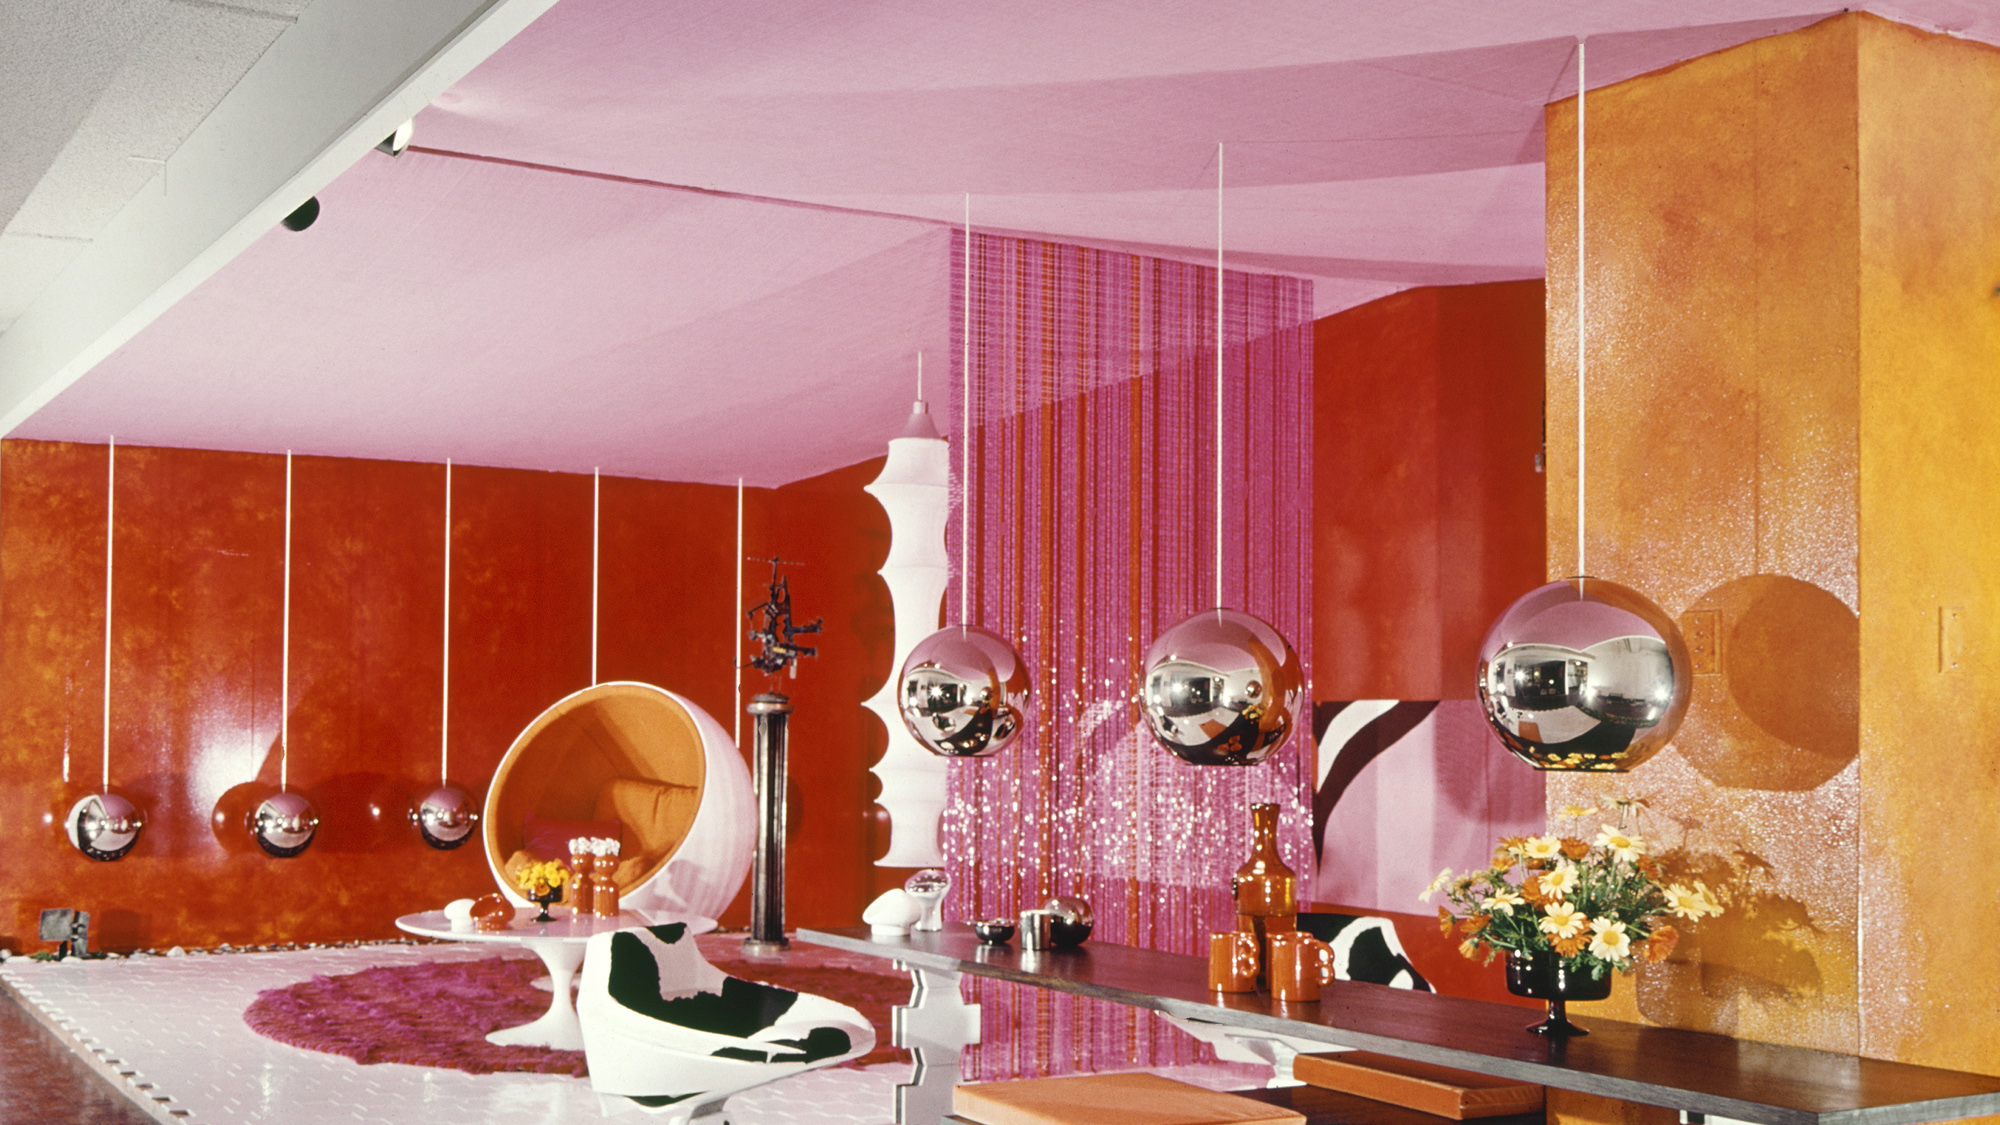 Exttremely colourful interior of room.